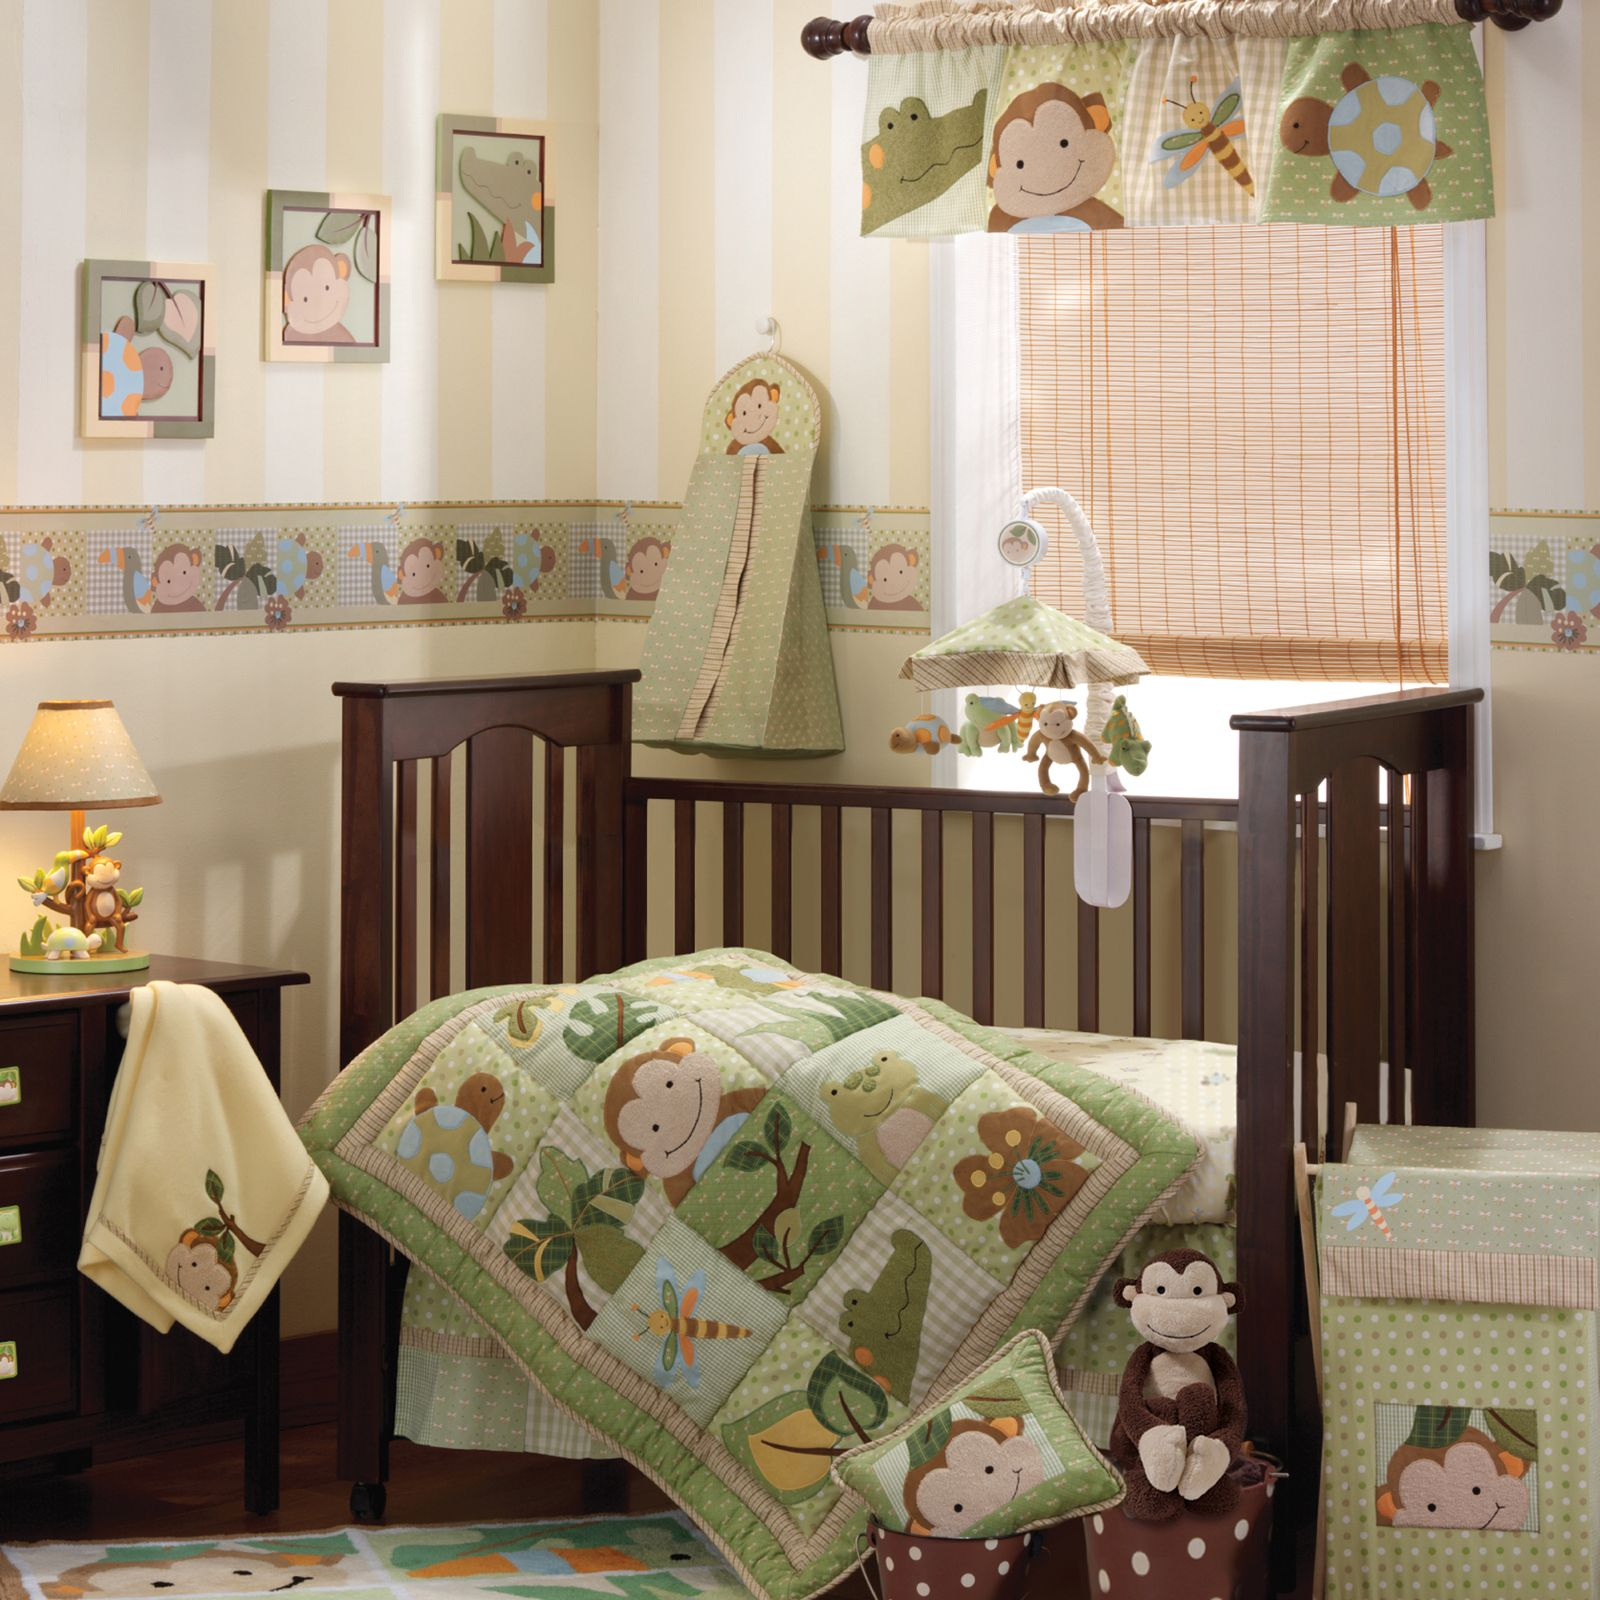 Monkey crib bedding for girl babies - Baby Bedding For Boys Google Search